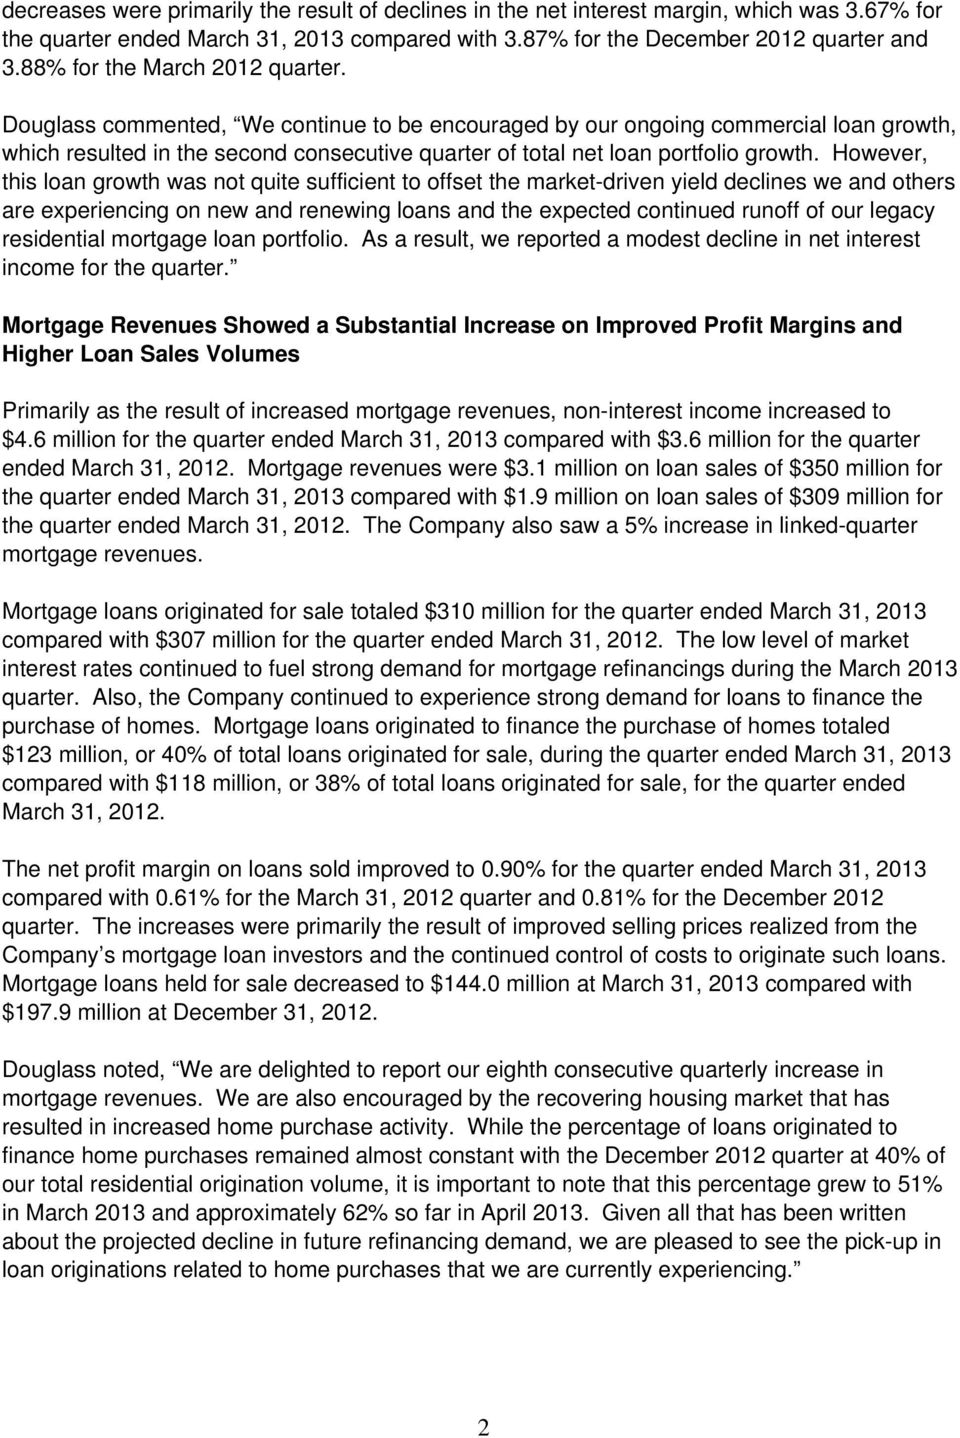 Douglass commented, We continue to be encouraged by our ongoing commercial loan growth, which resulted in the second consecutive quarter of total net loan portfolio growth.